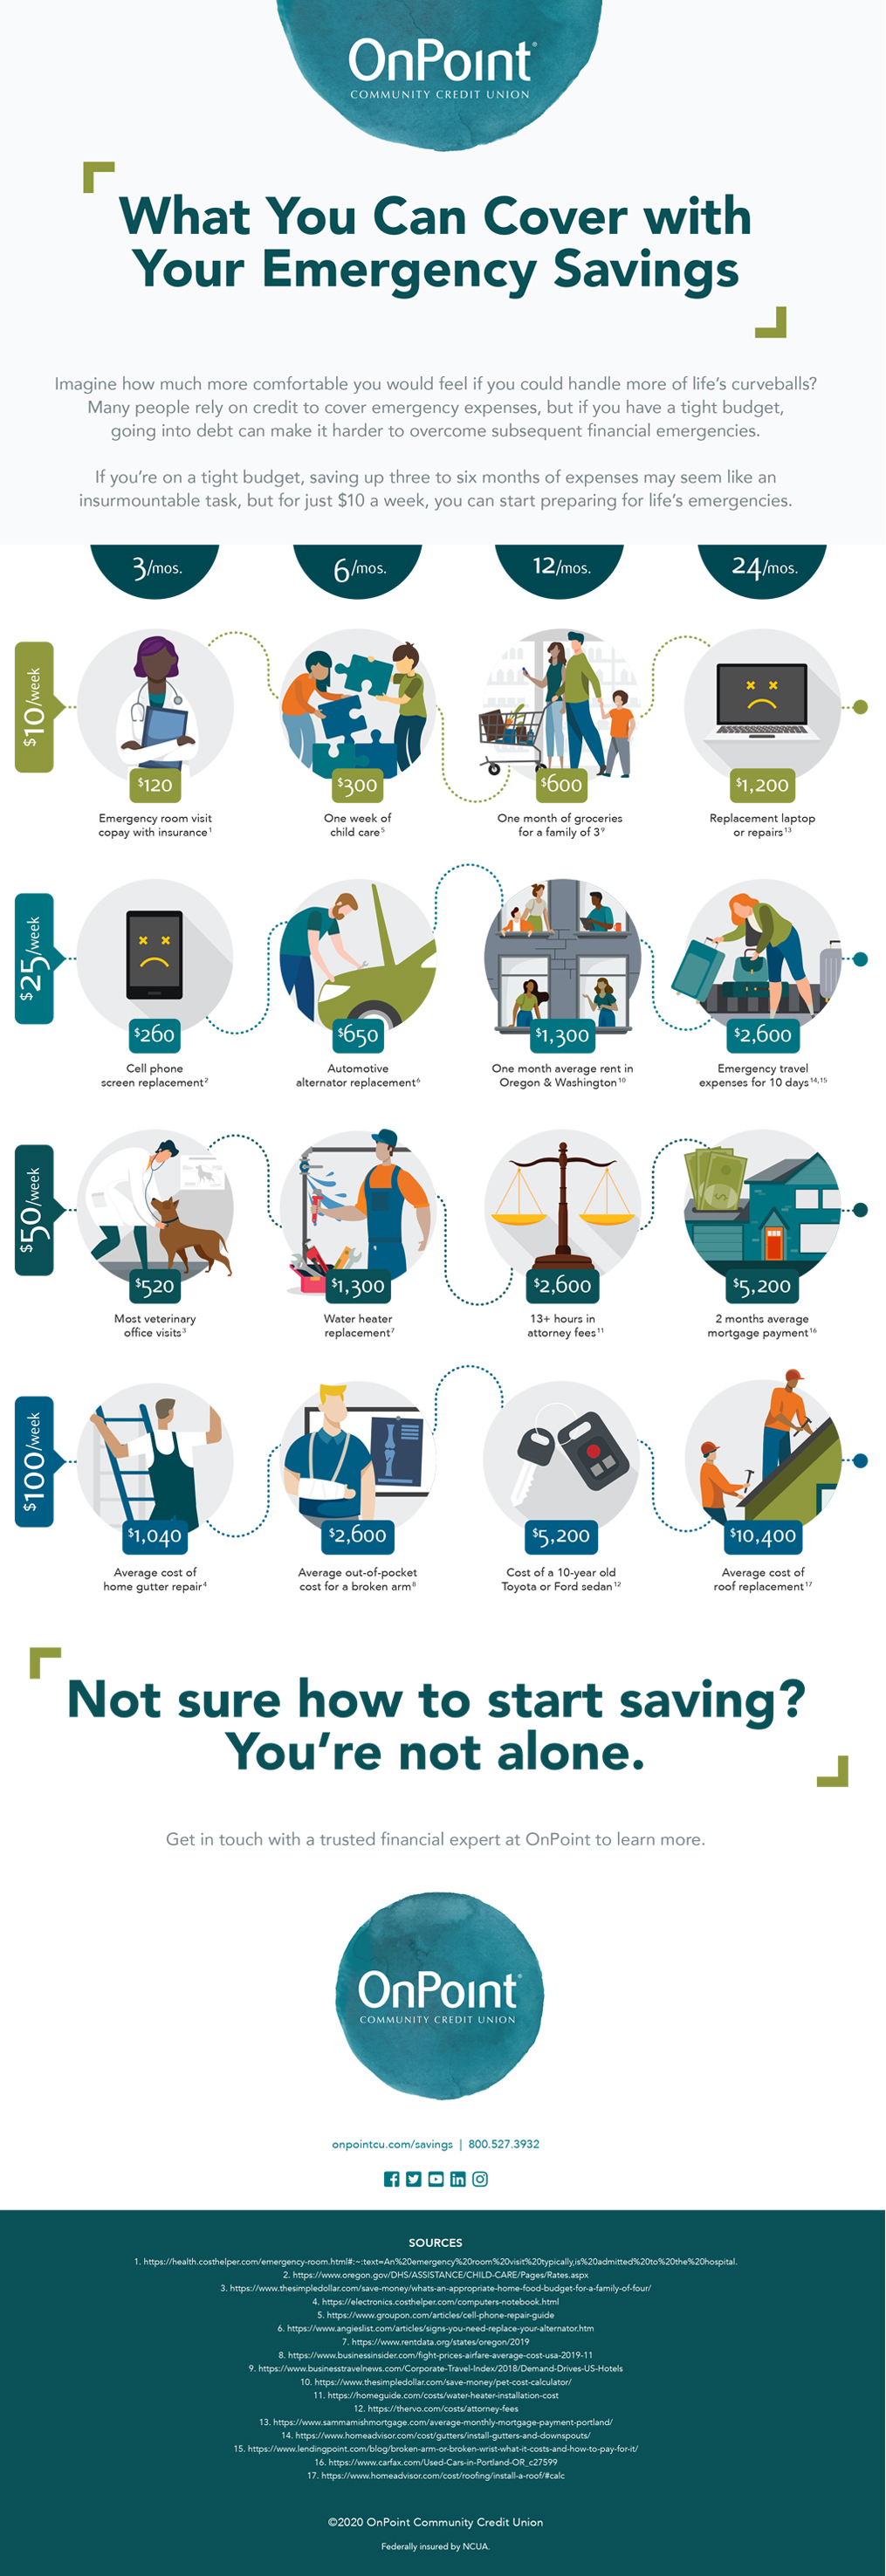 Emergency Savings Infographic_OnPoint